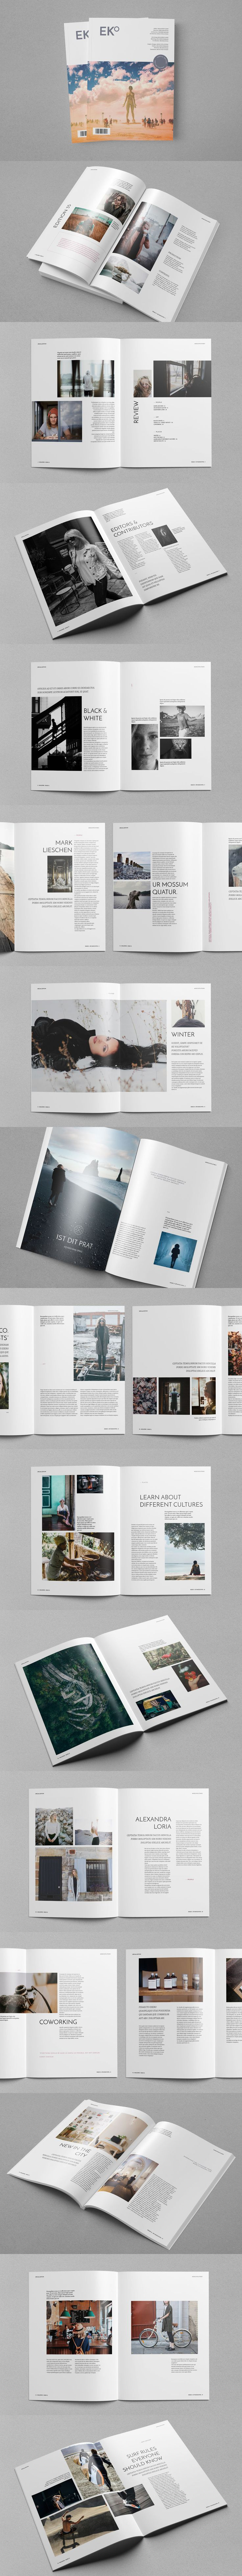 Eko Magazine is a stylish indesign template with 40 unique layouts suitable for publications about lifestyle, fashion, design, photography, travel…